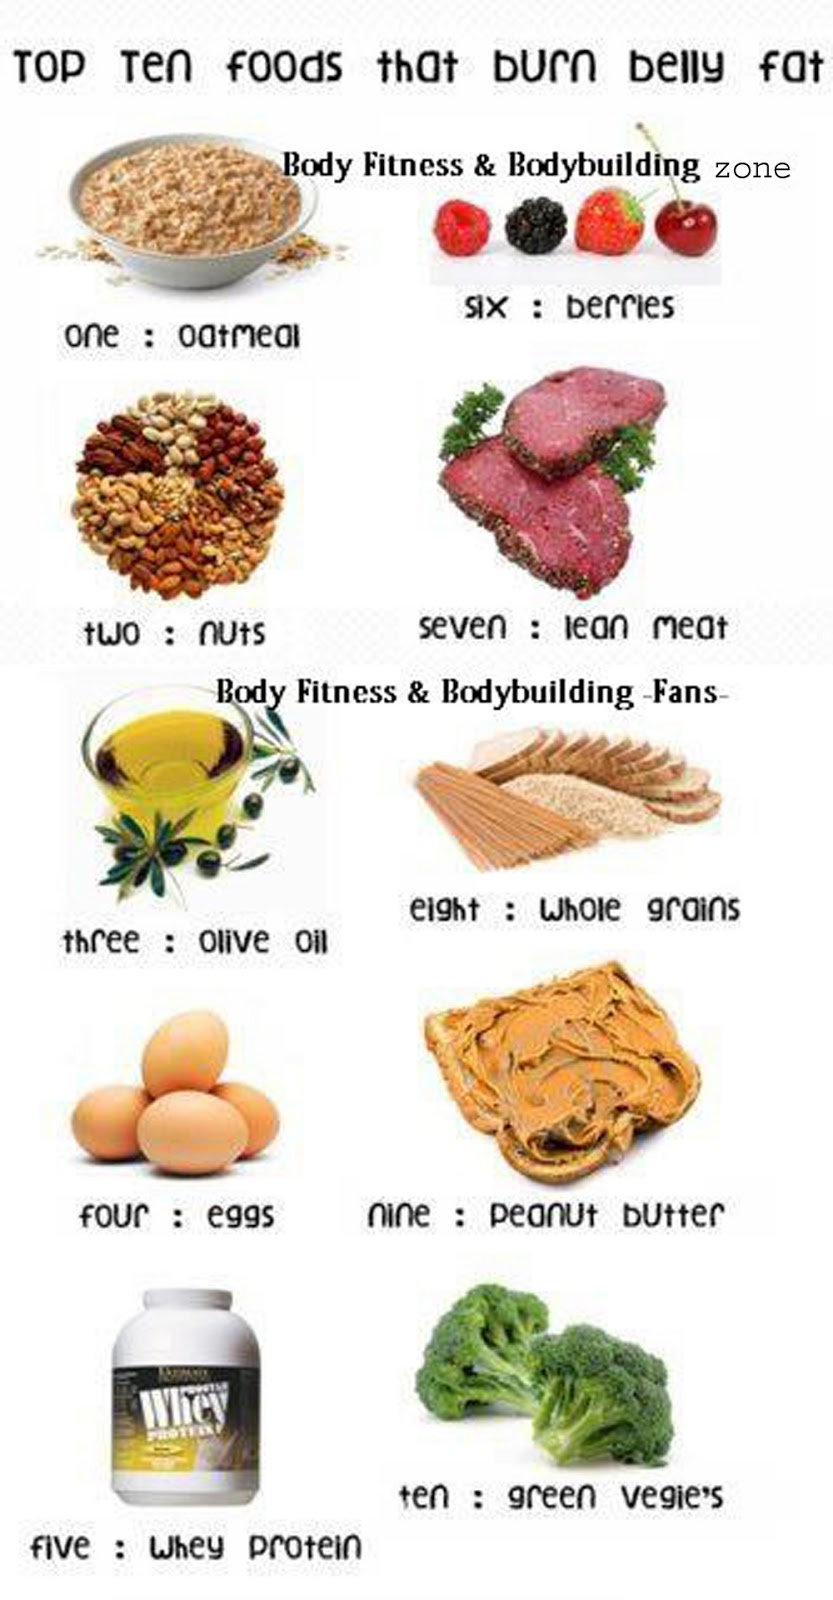 Balanced Diet | Bodybuilding and Fitness Zone